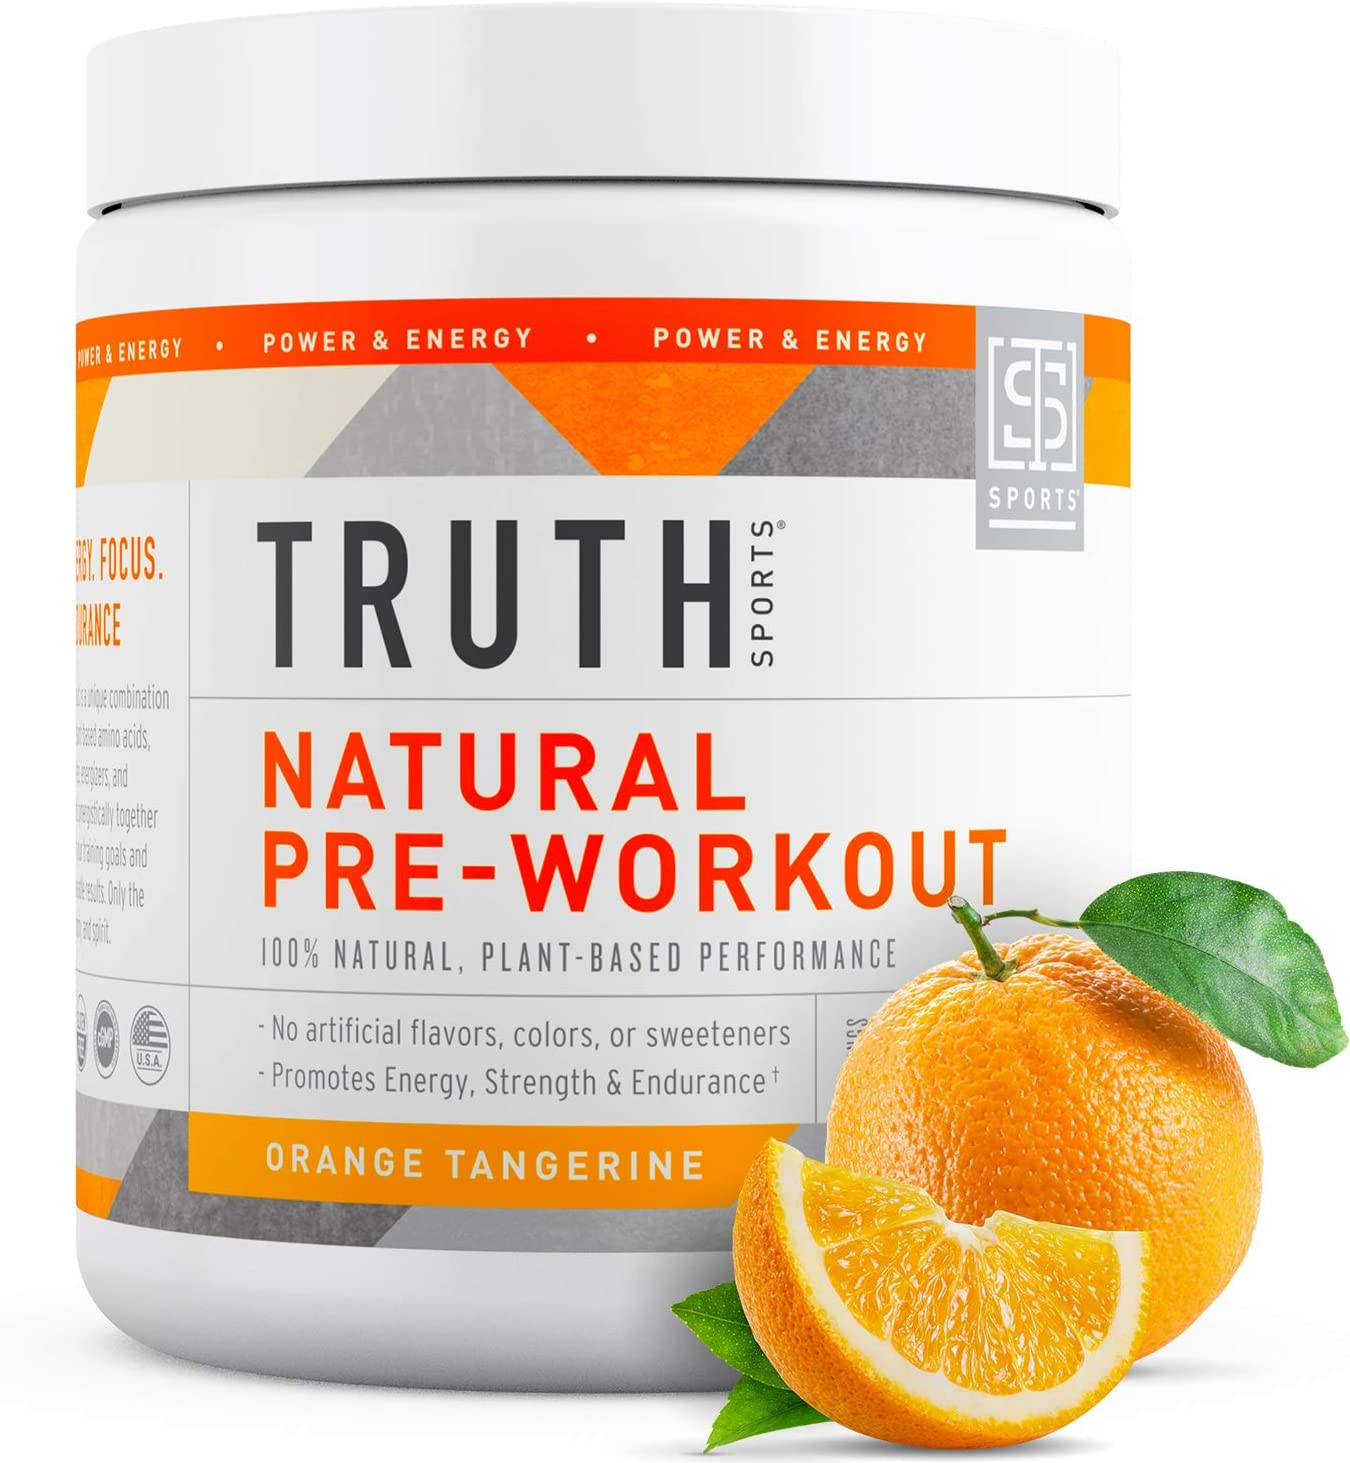 Natural PreWorkout Powder- Preworkout for Men & Women - Plant Based, Keto & Vegan Friendly - Energy, Focus & Performance - Truth Nutrition (30 Servings) (Orange Tangerine)